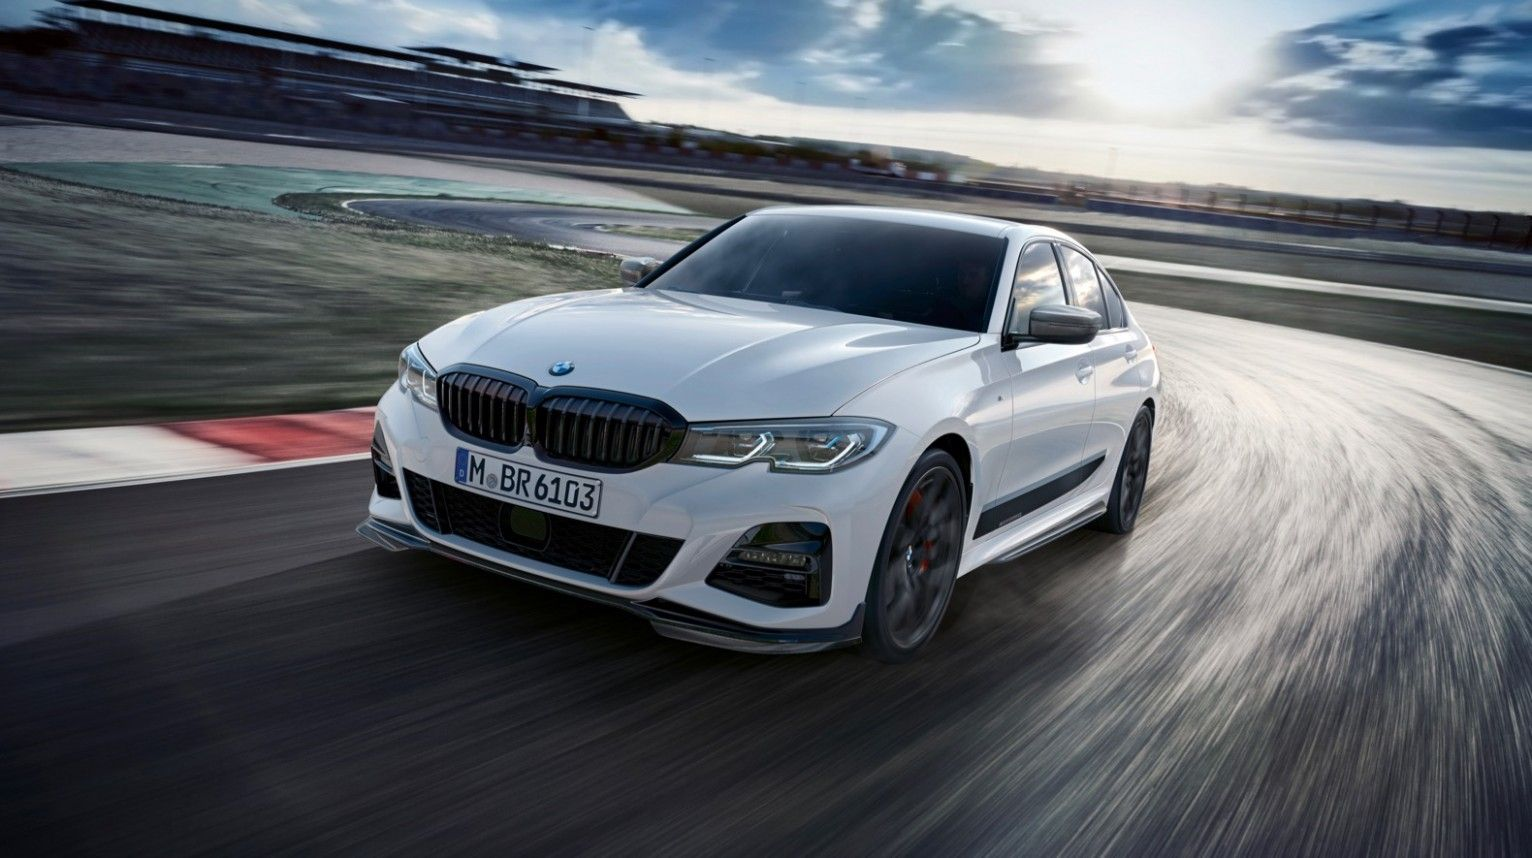 7 Important Facts That You Should Know About 2020 Bmw M4 Gts Design